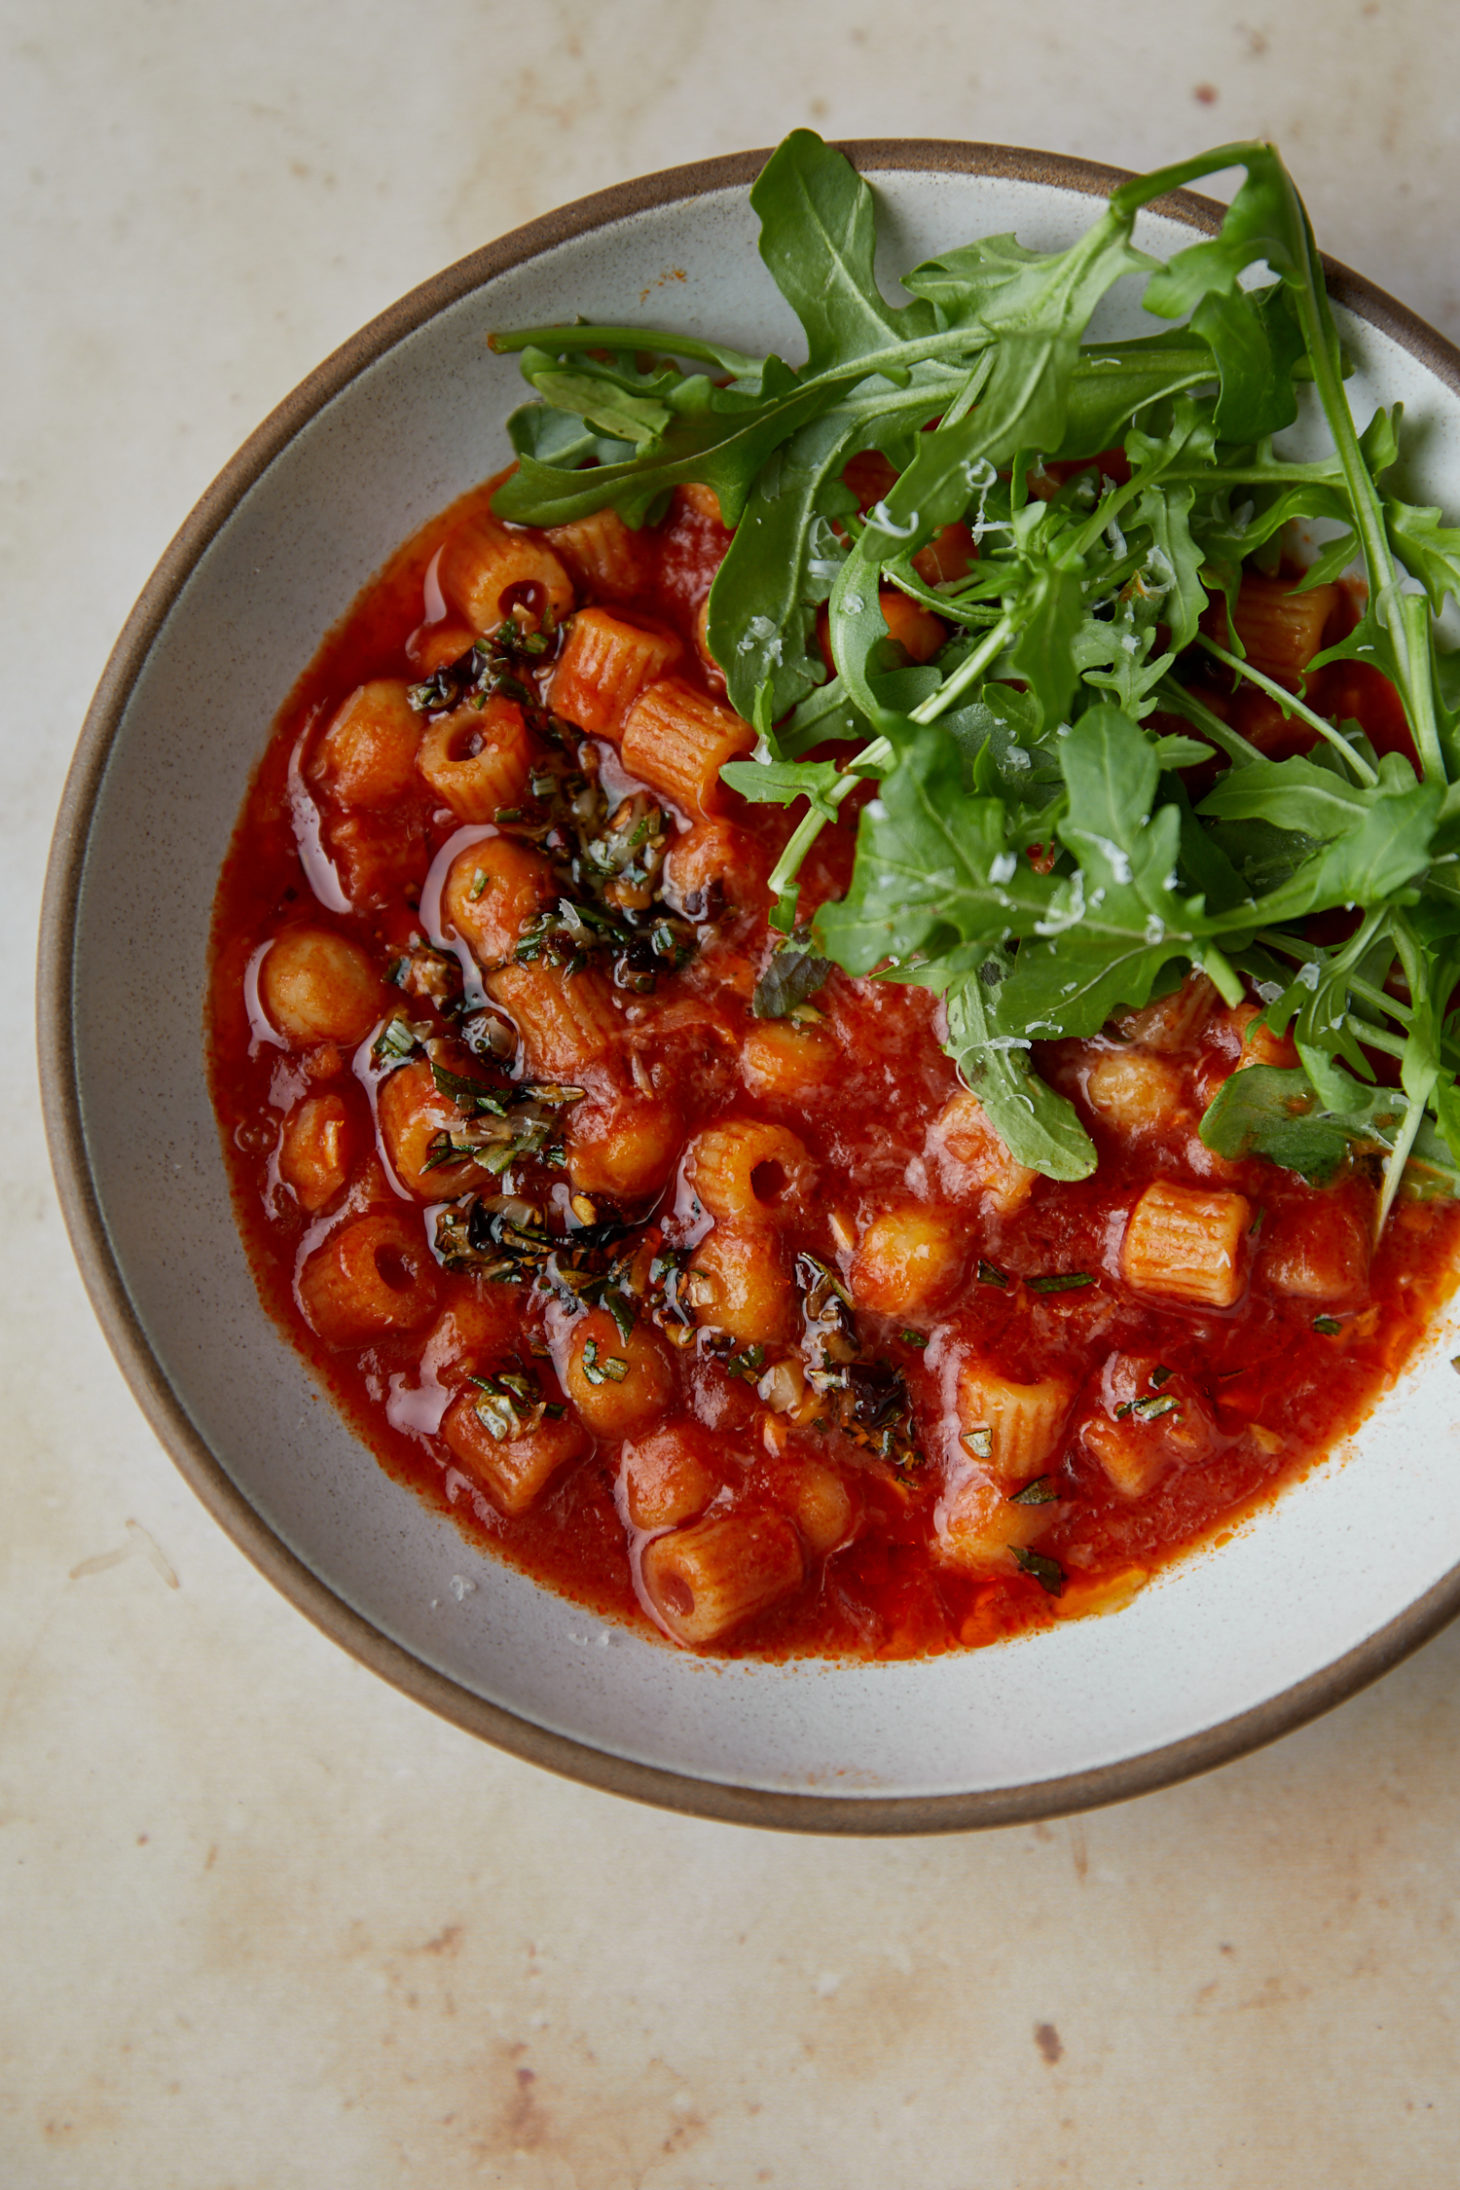 Close-up photo of a greyish bowl filled with pasta, chickpea, and tomato soup with arugula on top.